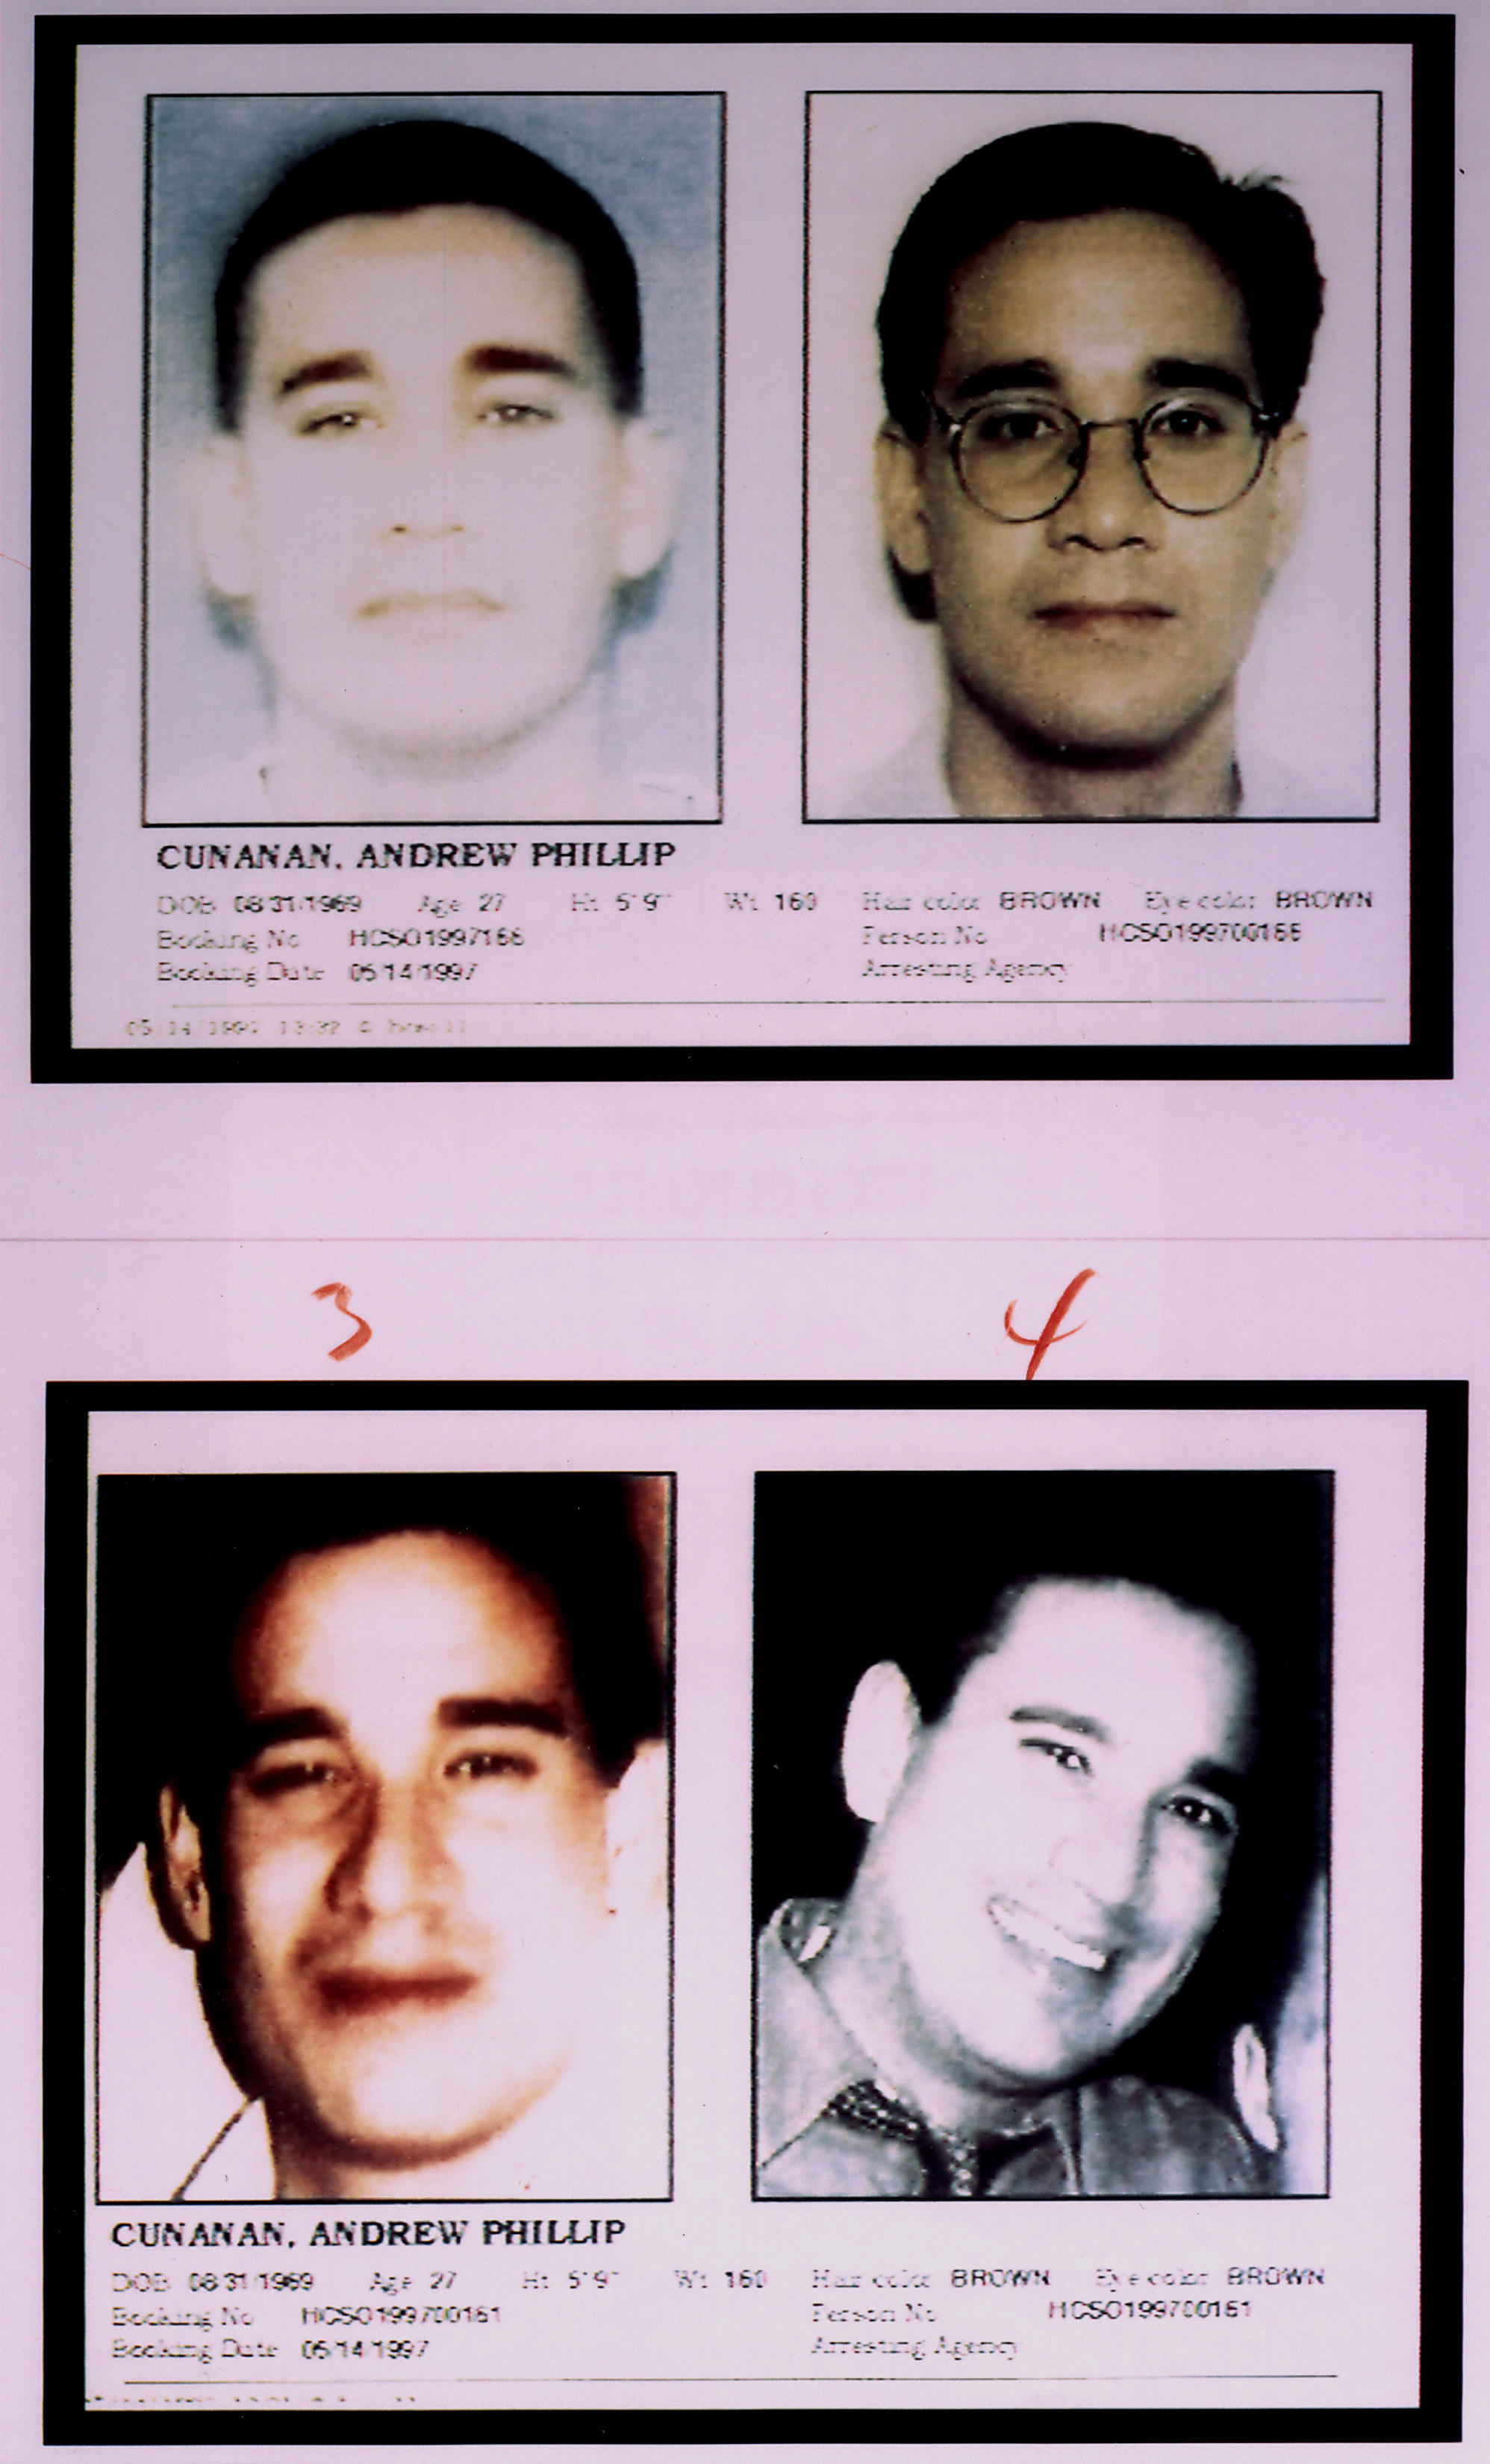 Four mug shots of Andrew Cunanan, who shot and killed fashion designer Gianni Versace.